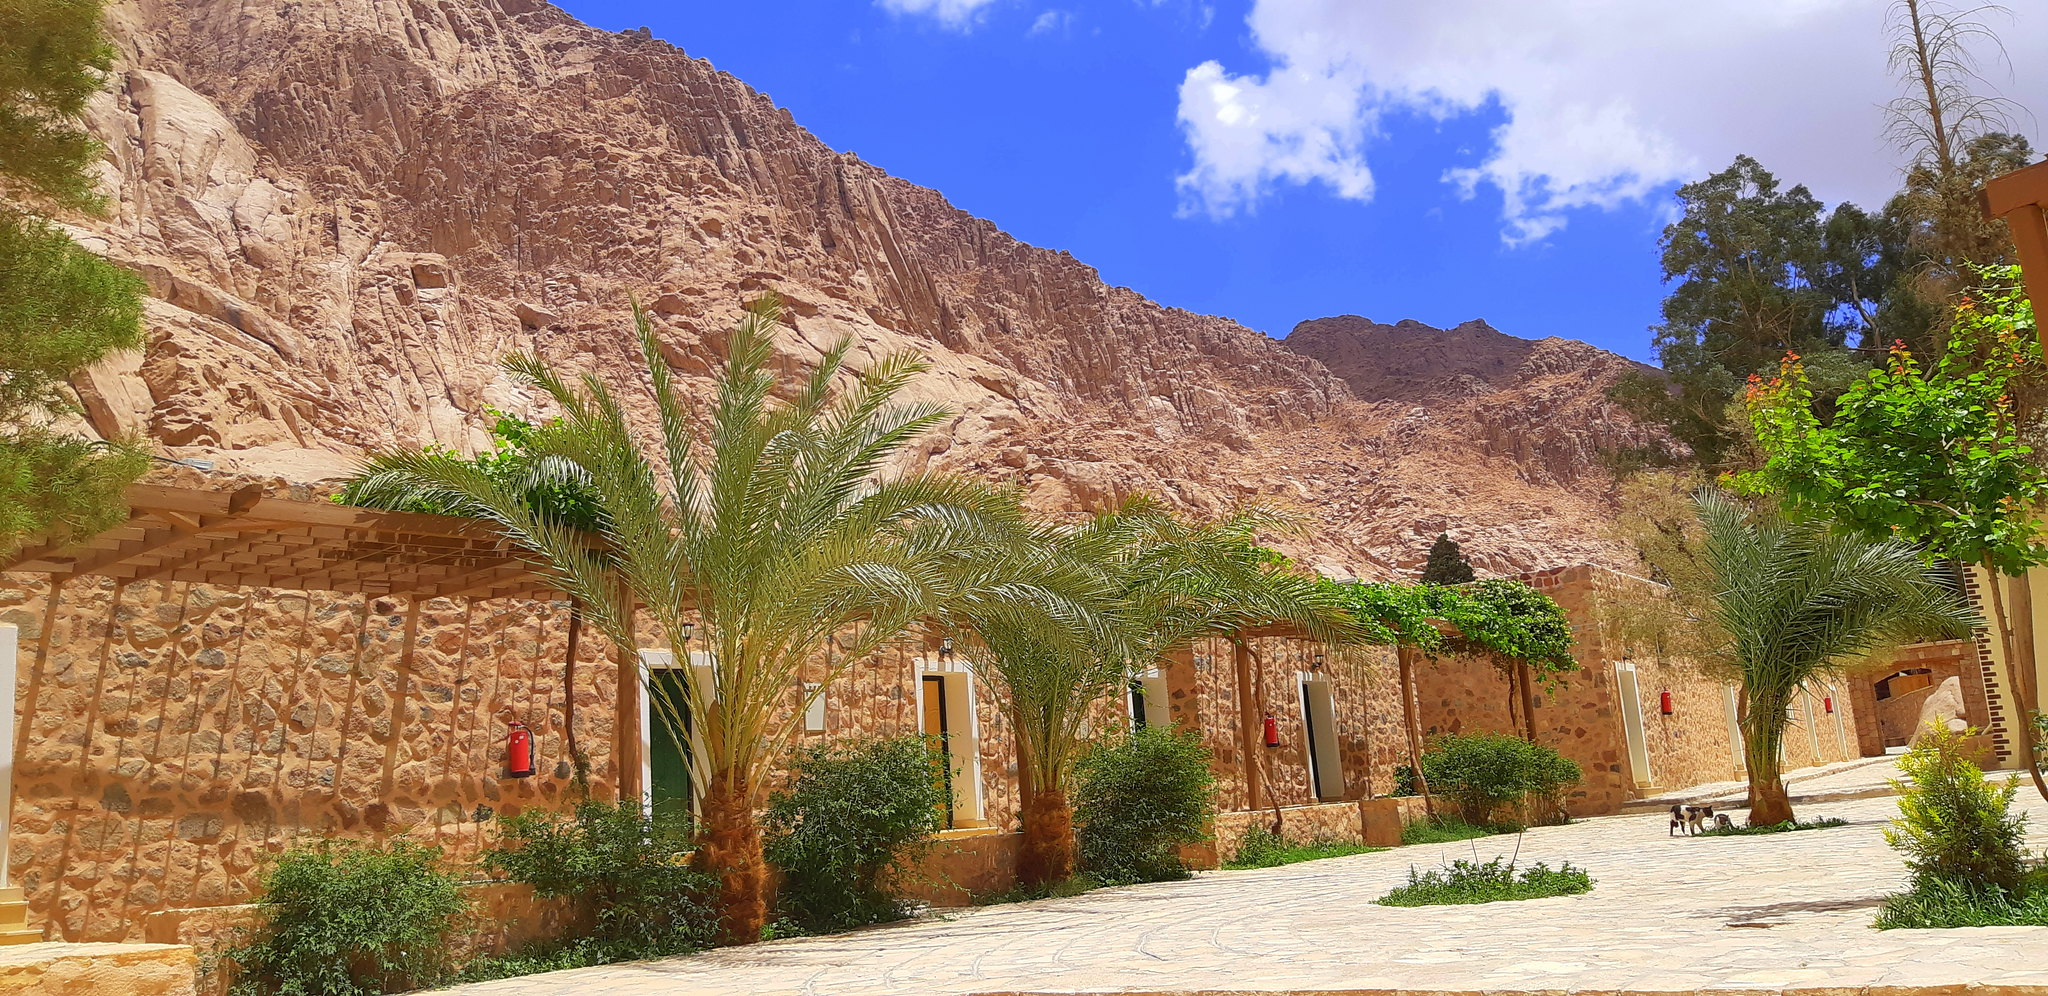 St.Catherine monastery is a day trip from Dahab